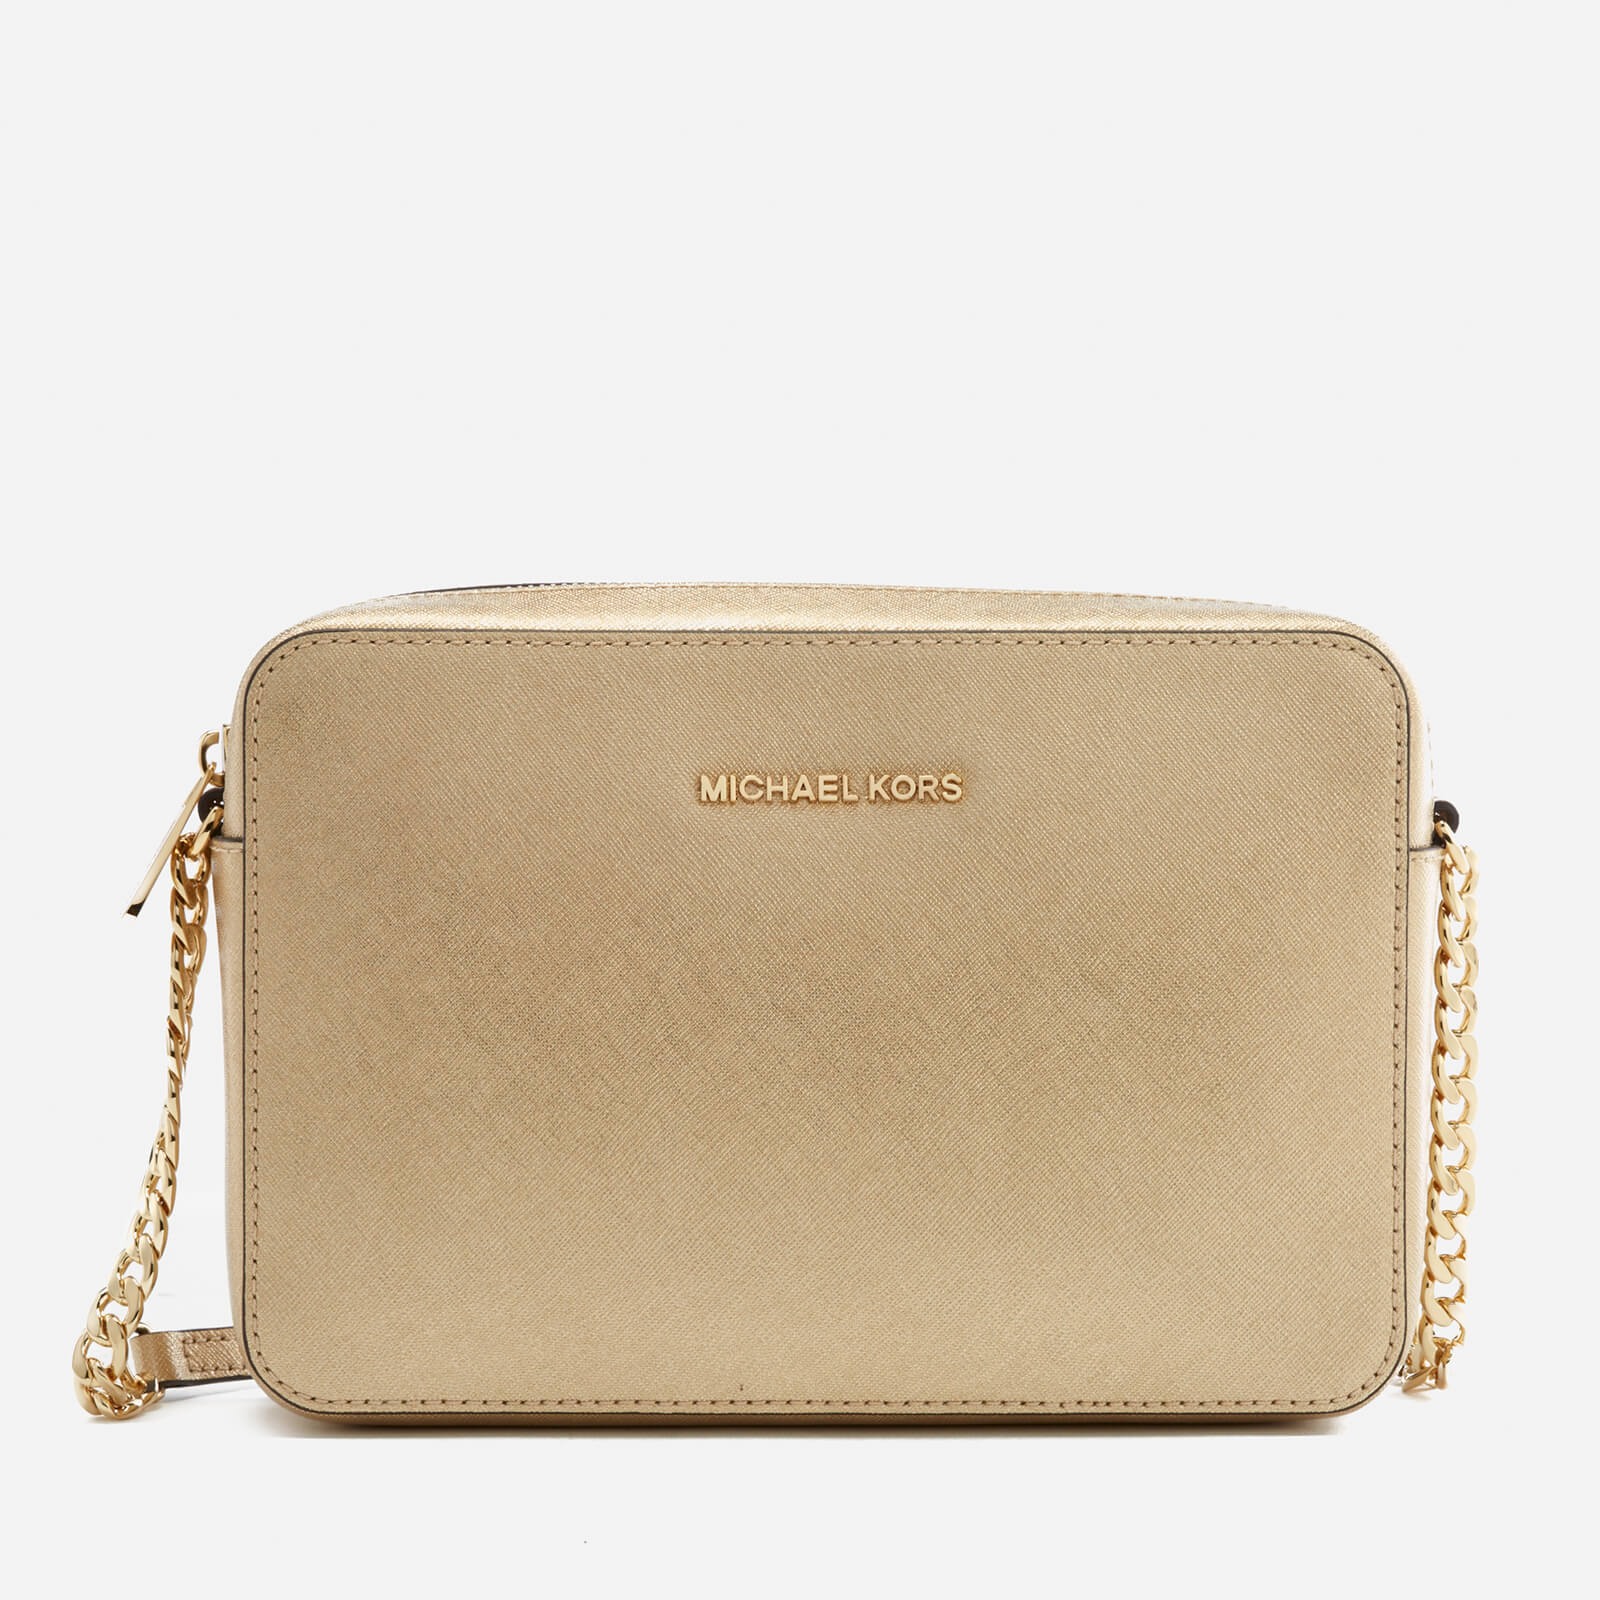 59a63b86465b MICHAEL MICHAEL KORS Women's Jet Set Large East West Cross Body Bag - Pale  Gold Clothing | TheHut.com